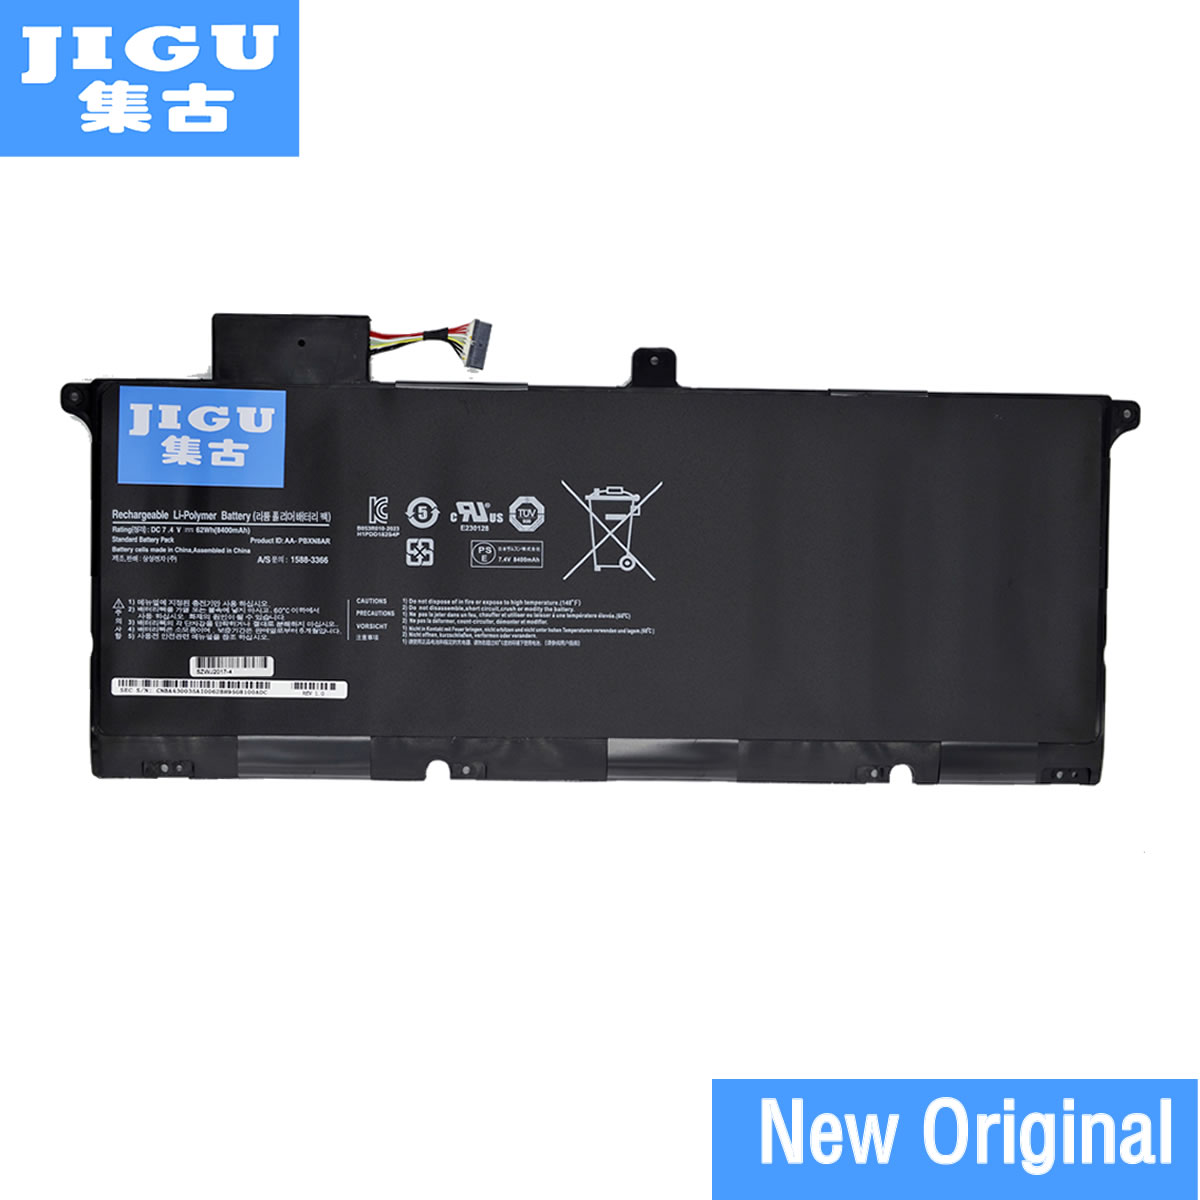 JIGU AA-PBXN8AR Replacement Laptop Battery For Samsung 900X4 900X46 900X4B-A01DE 900X4B-A01FR 900X4B-A03 900X4C-A01 NP900X4 new 7 4v 8400mah 62wh aa pbxn8ar battery for samsung np900x4 900x4b a01de 900x4c a01 900x4b a02us free shipping